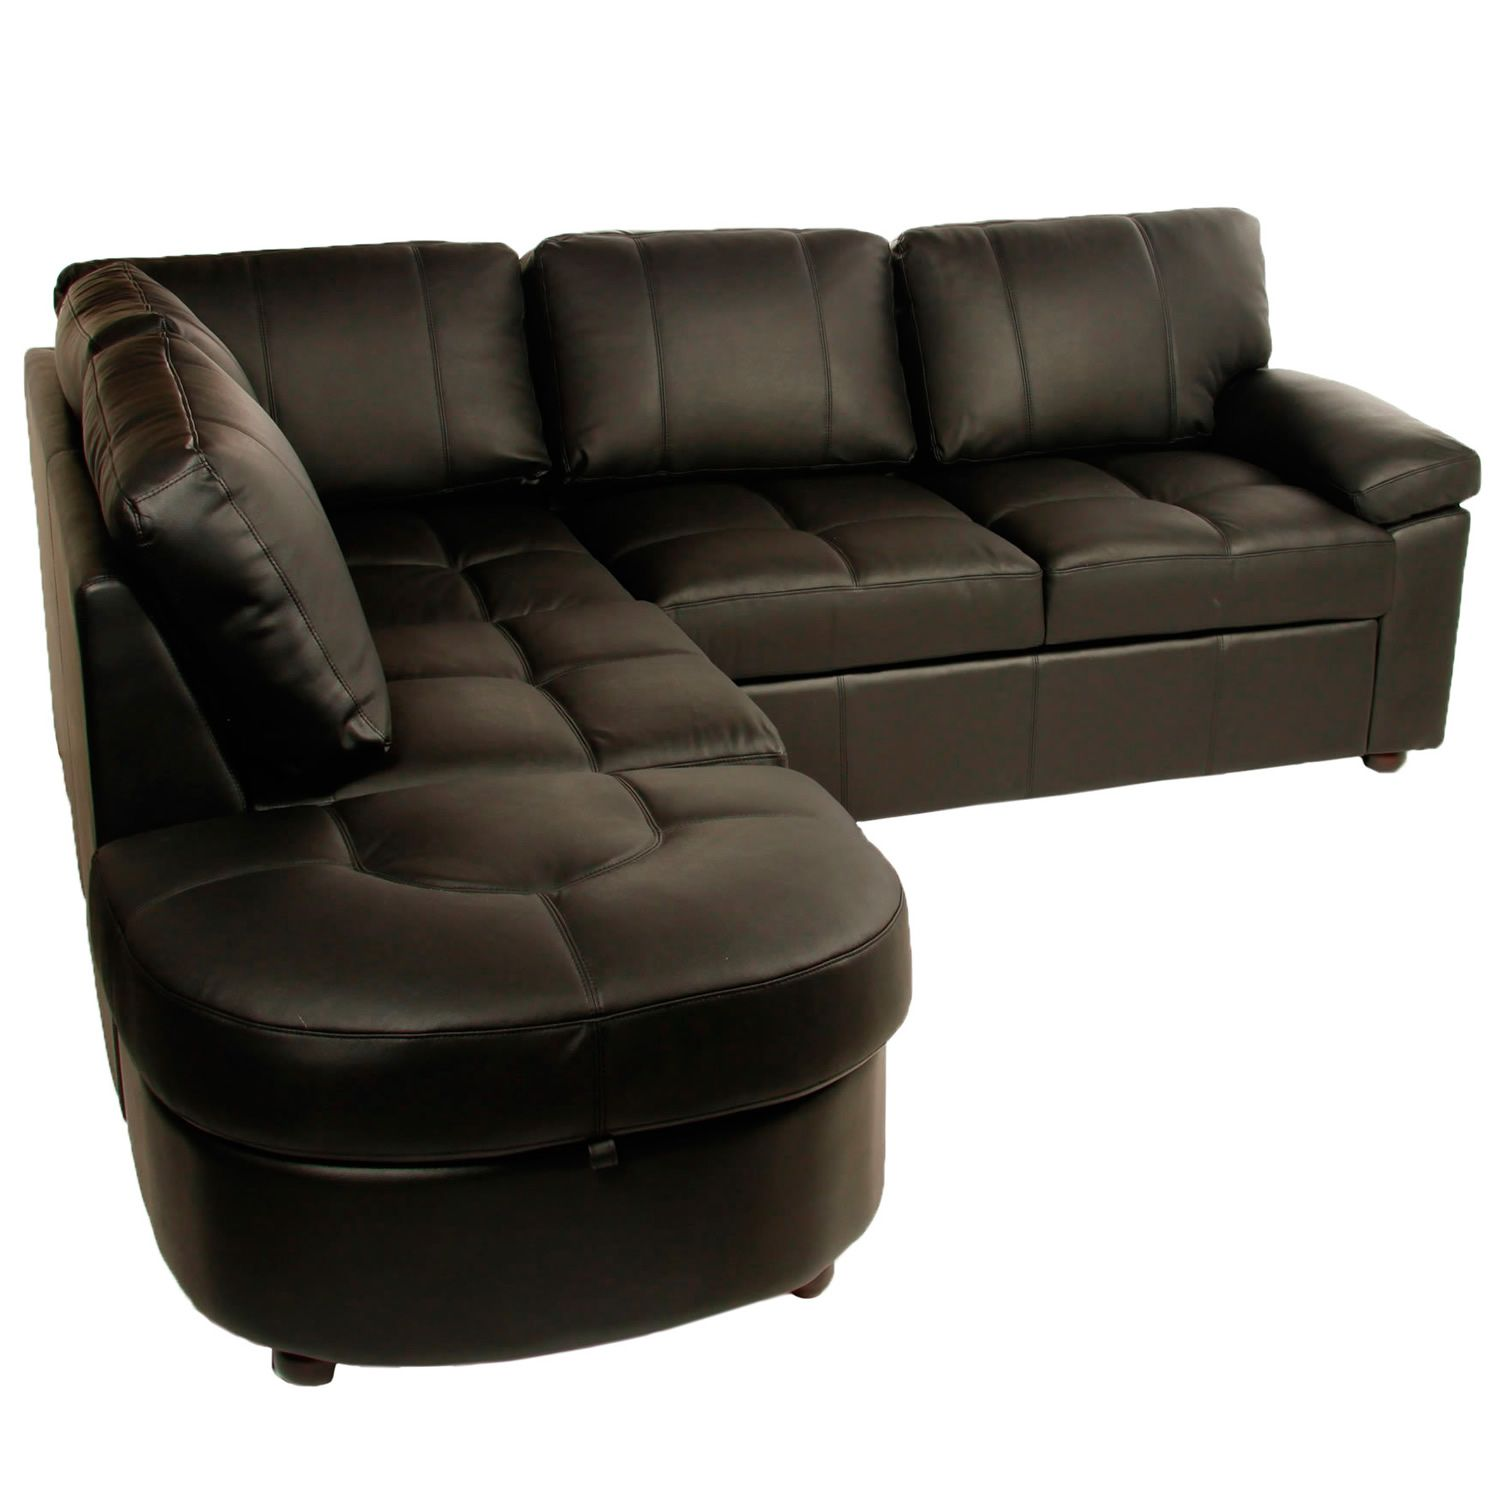 Groovy Lina Black Leather Corner Sofa Bed With Storage Ibusinesslaw Wood Chair Design Ideas Ibusinesslaworg